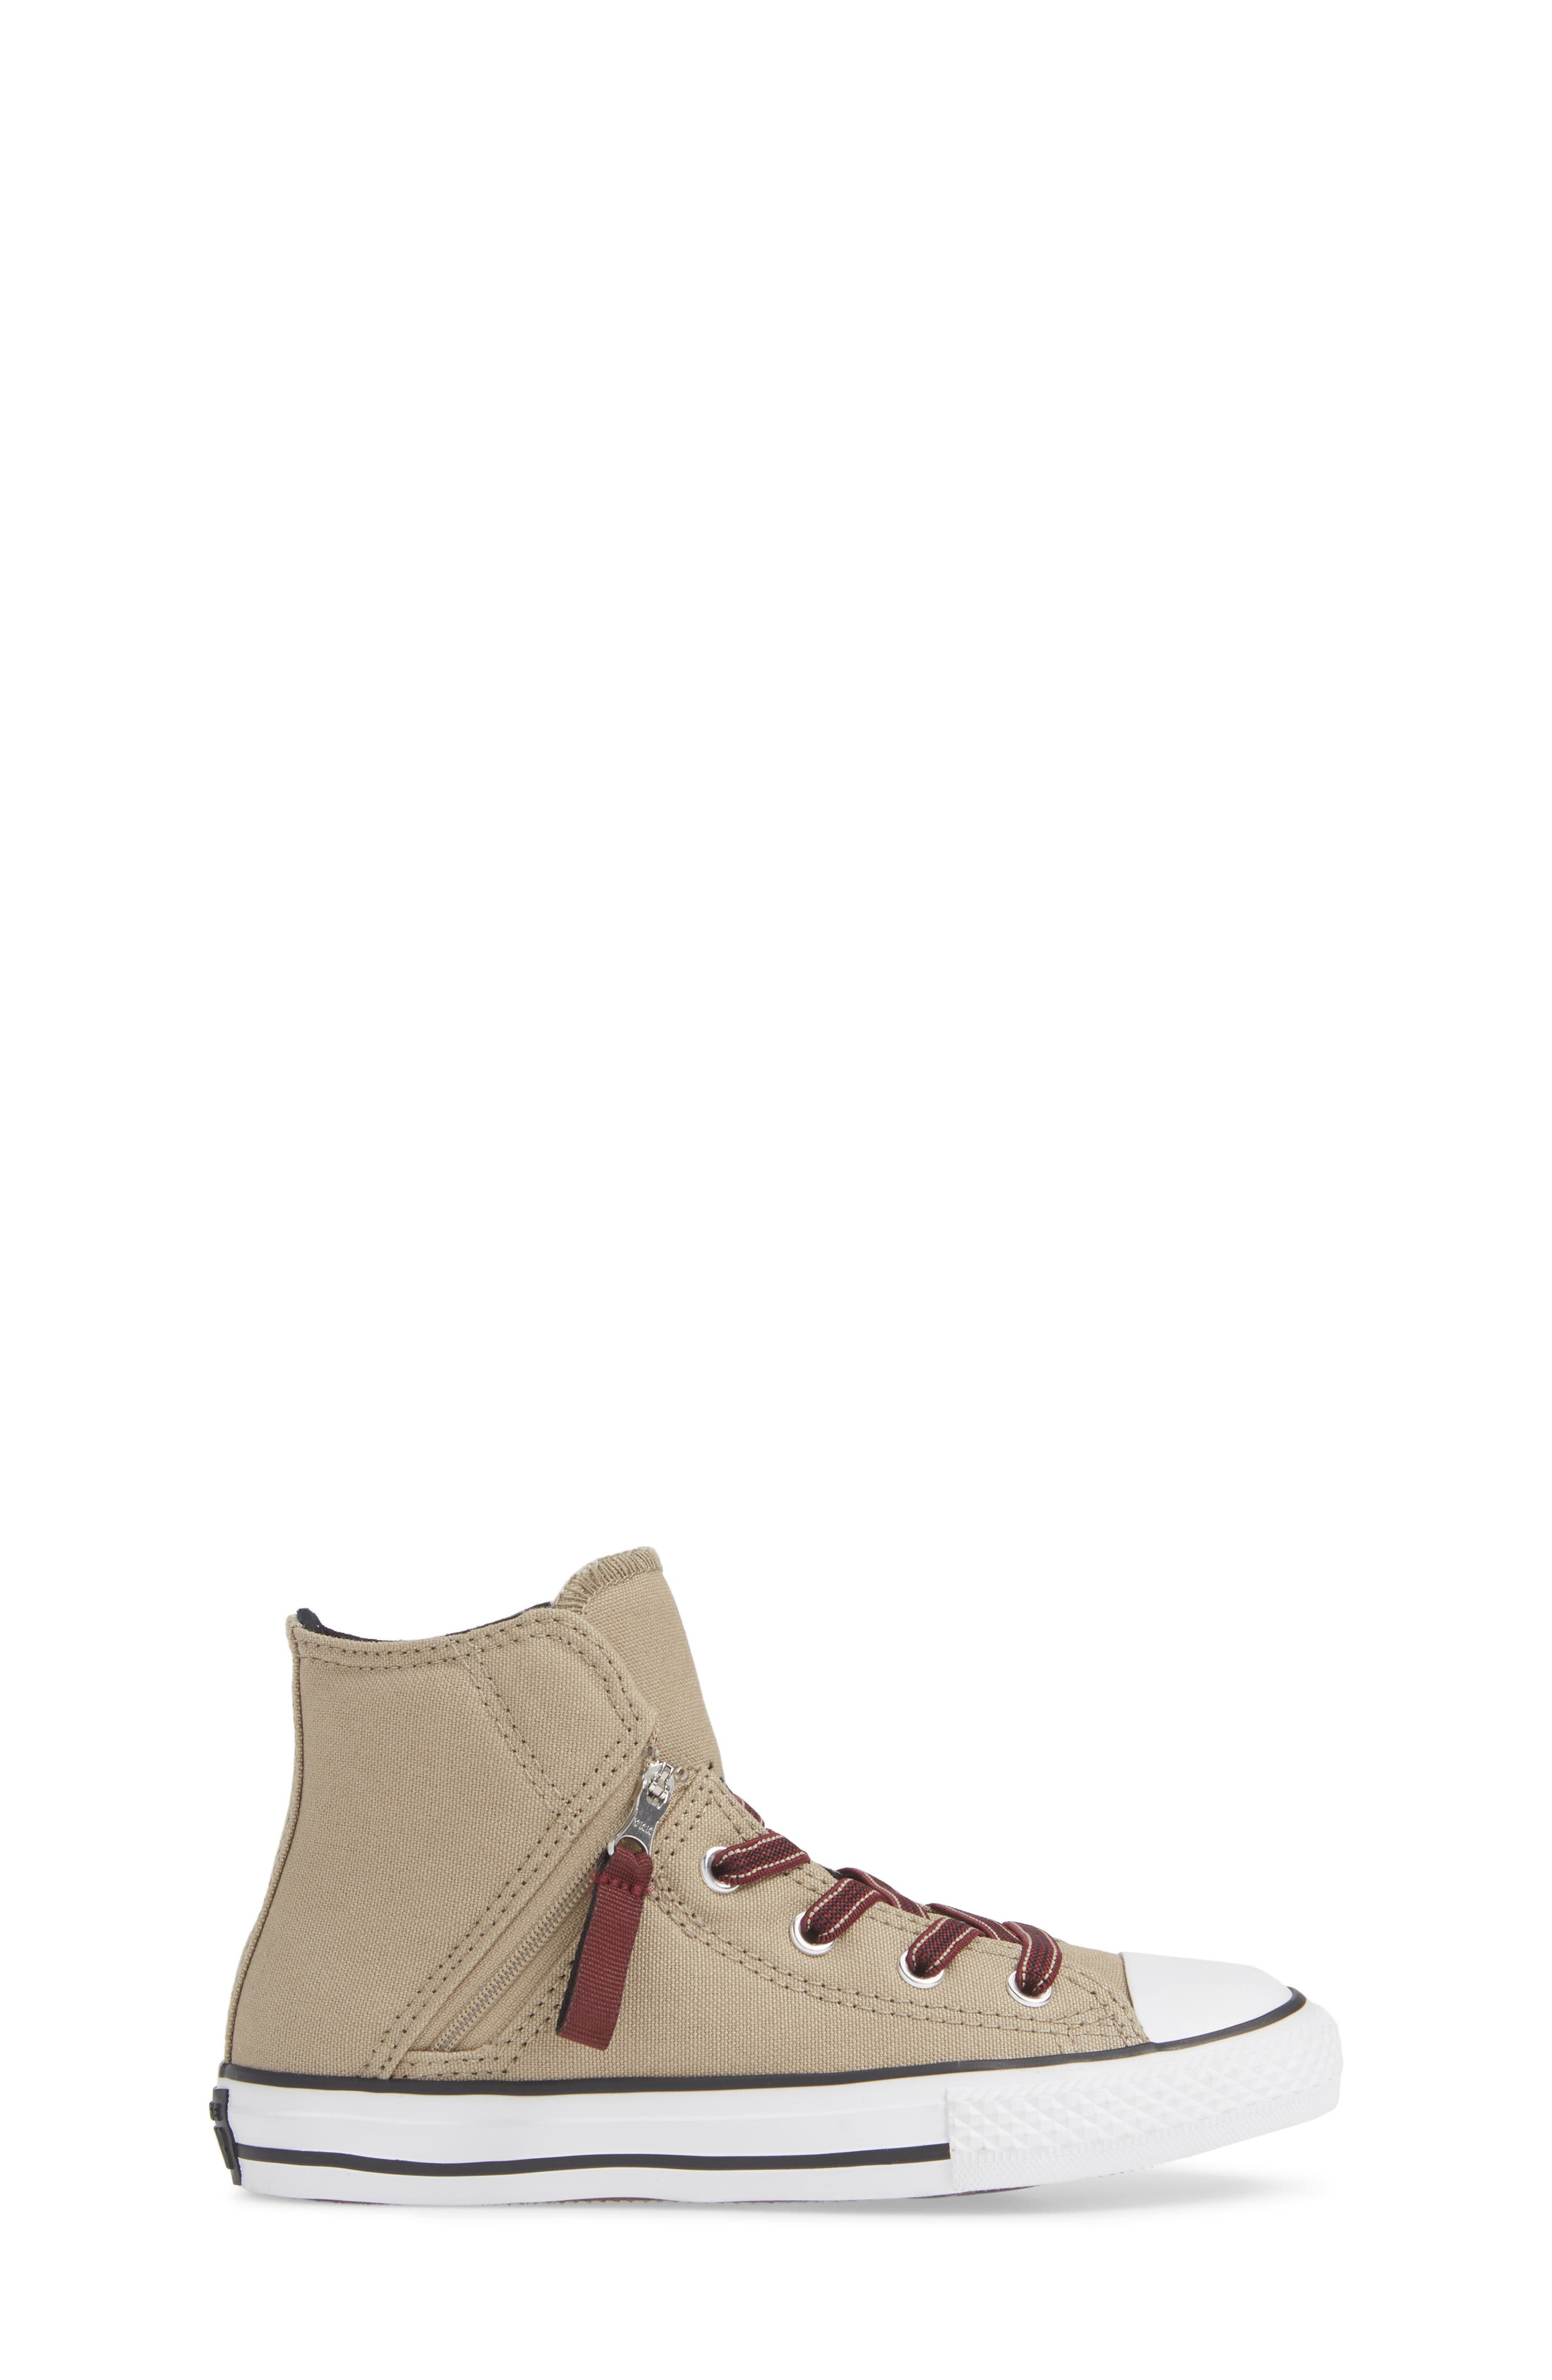 Chuck Taylor<sup>®</sup> All Star<sup>®</sup> Pull Zip High Top Sneaker,                             Alternate thumbnail 3, color,                             KHAKI